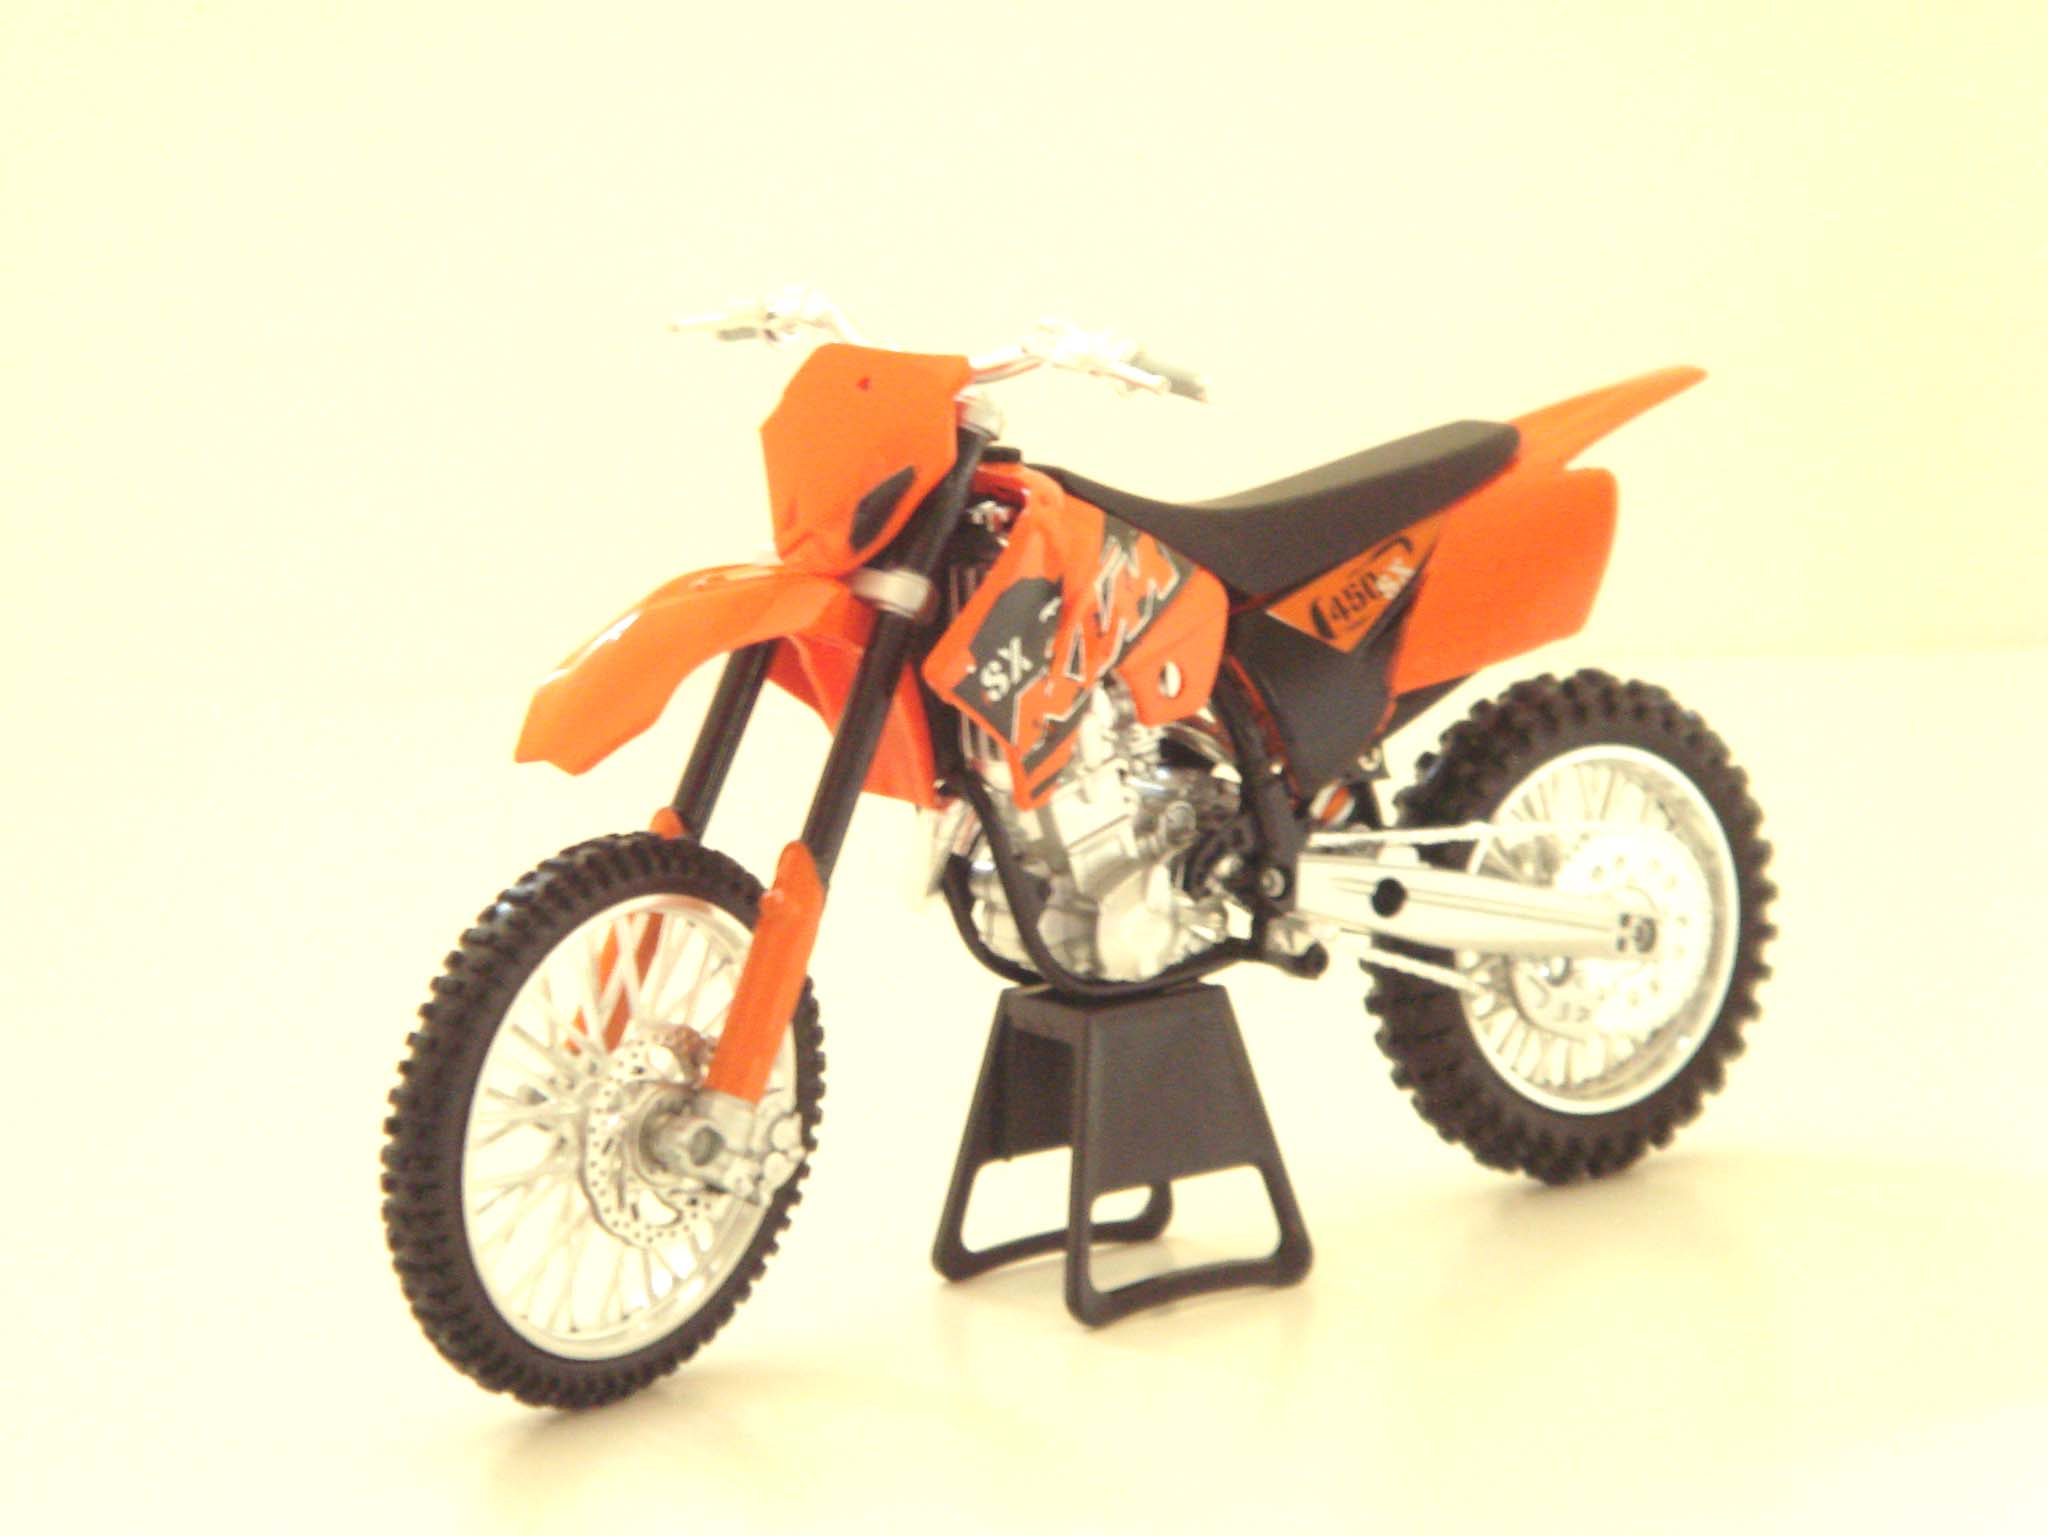 KTM 1:12 SX450 Motocross Collectible Motorcycle